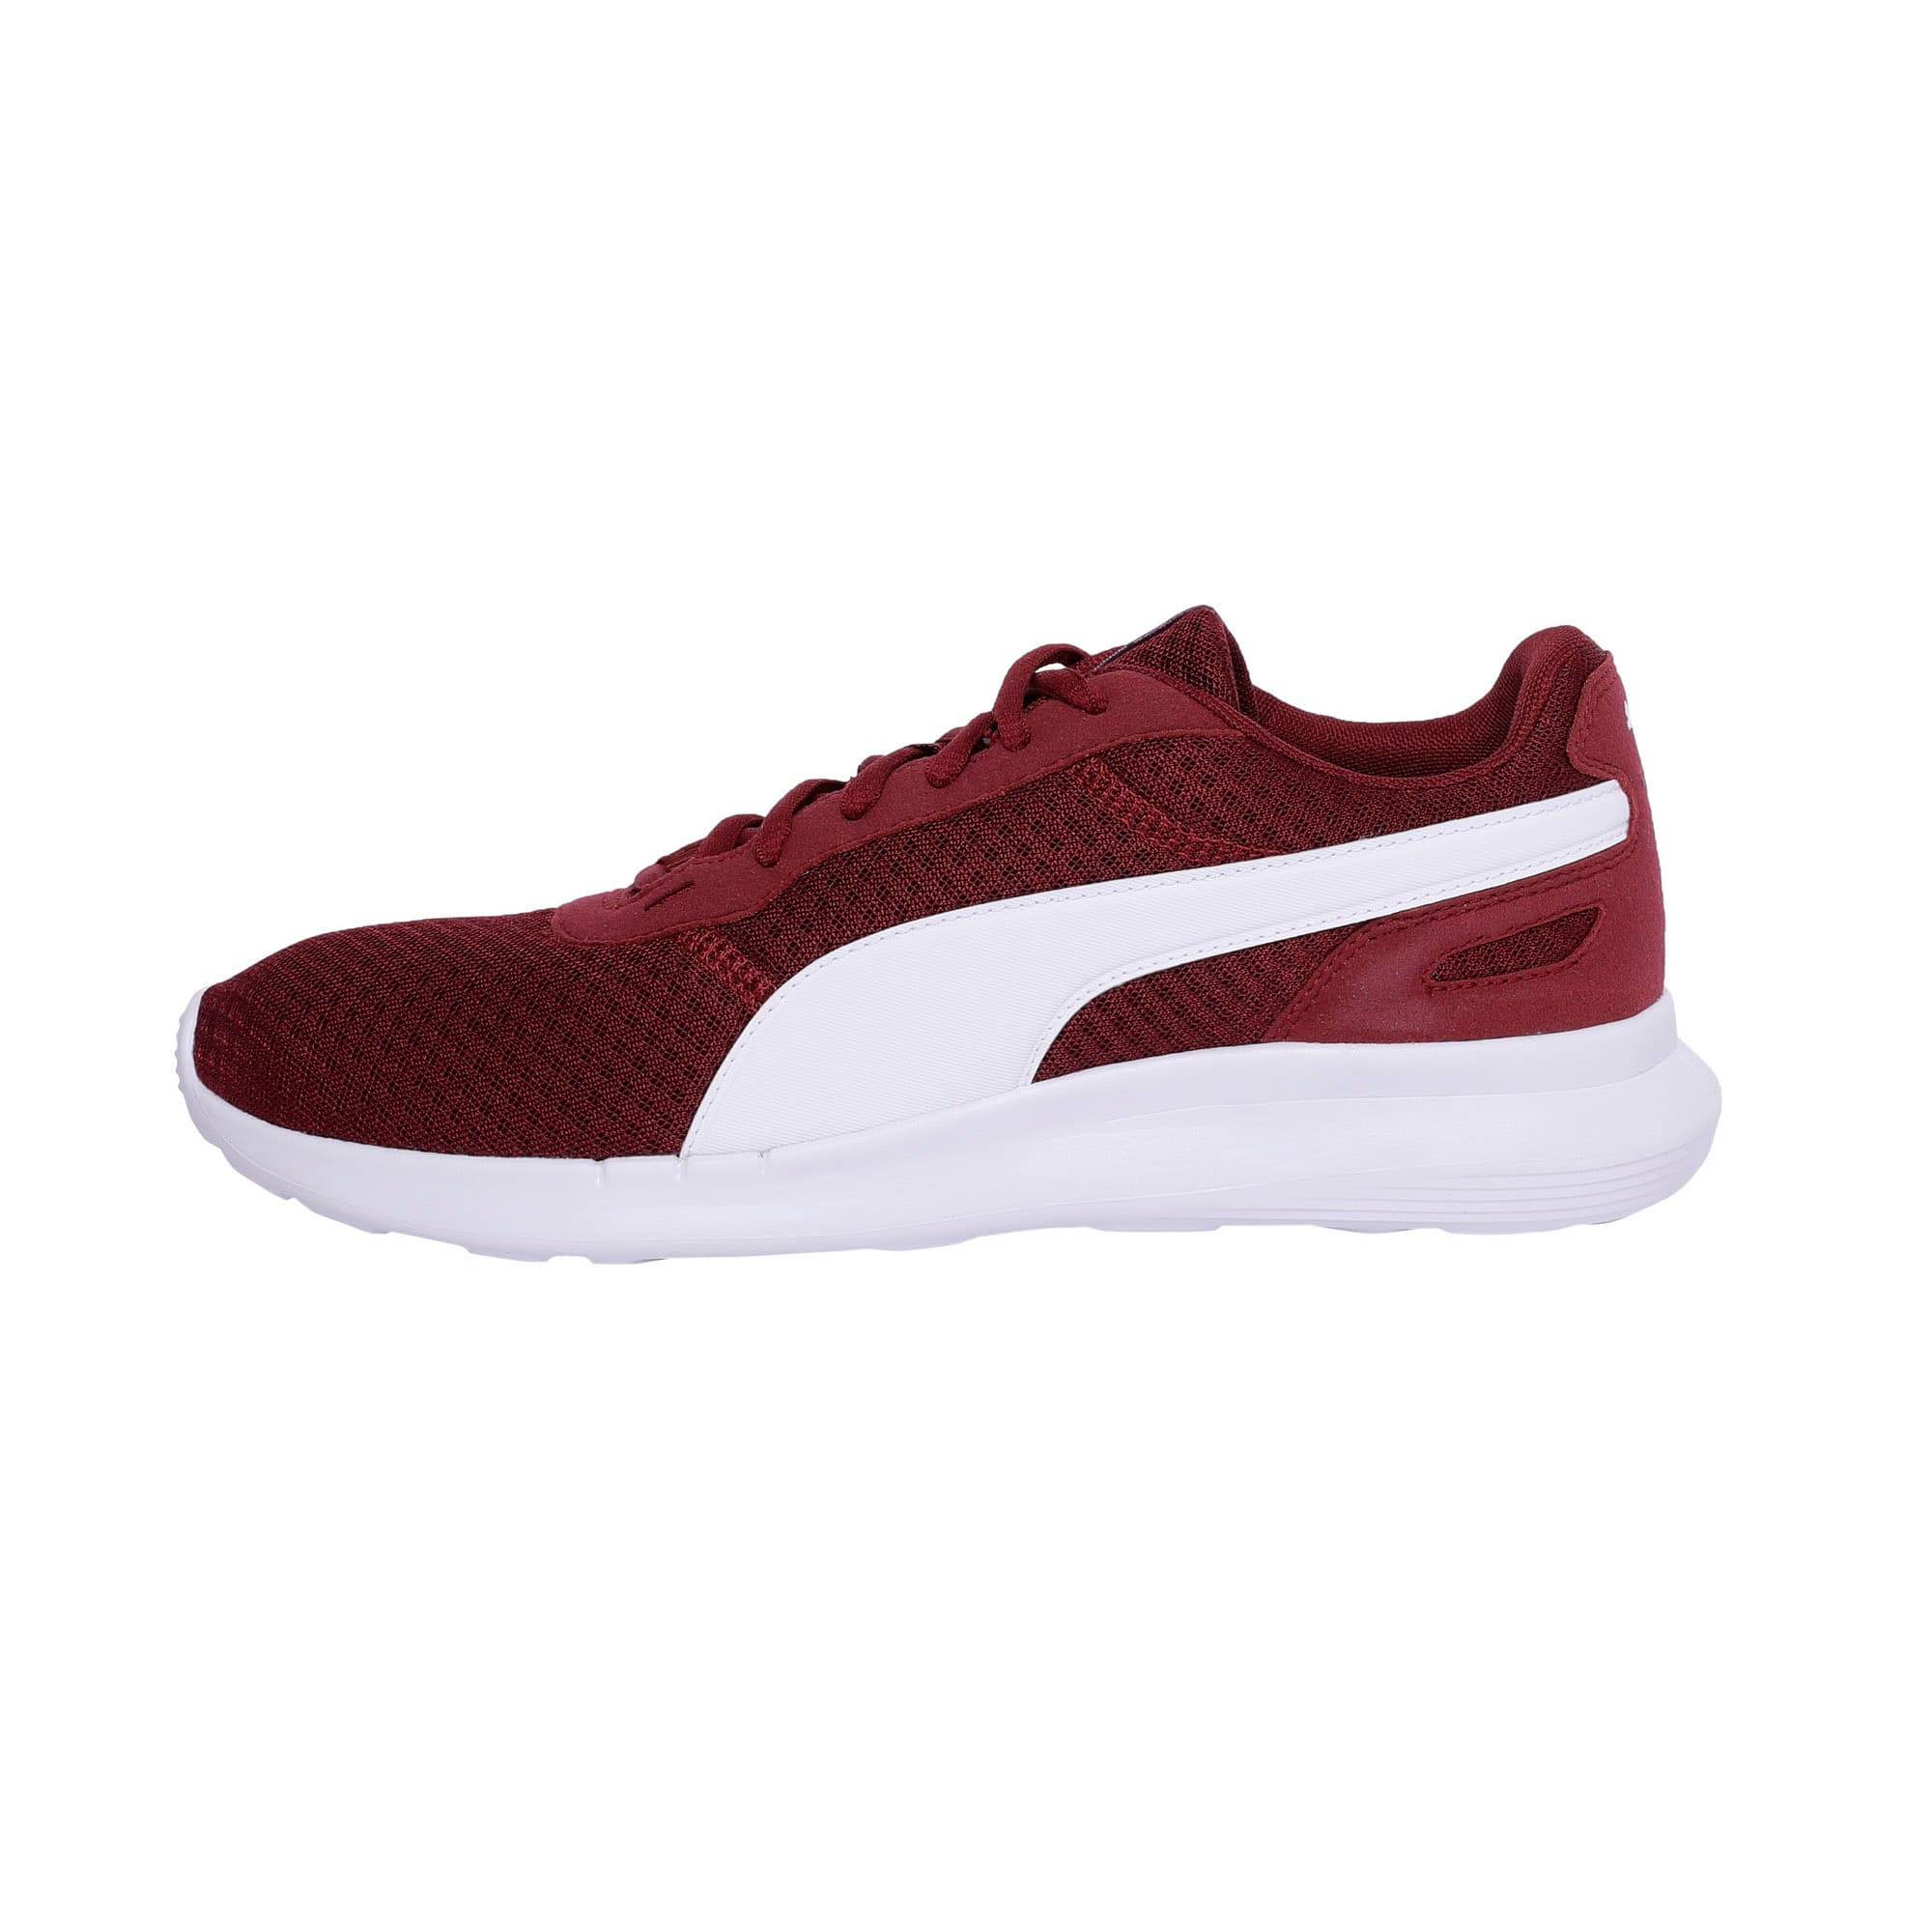 Thumbnail 1 of ST Activate Trainers, Cordovan-Puma White, medium-IND